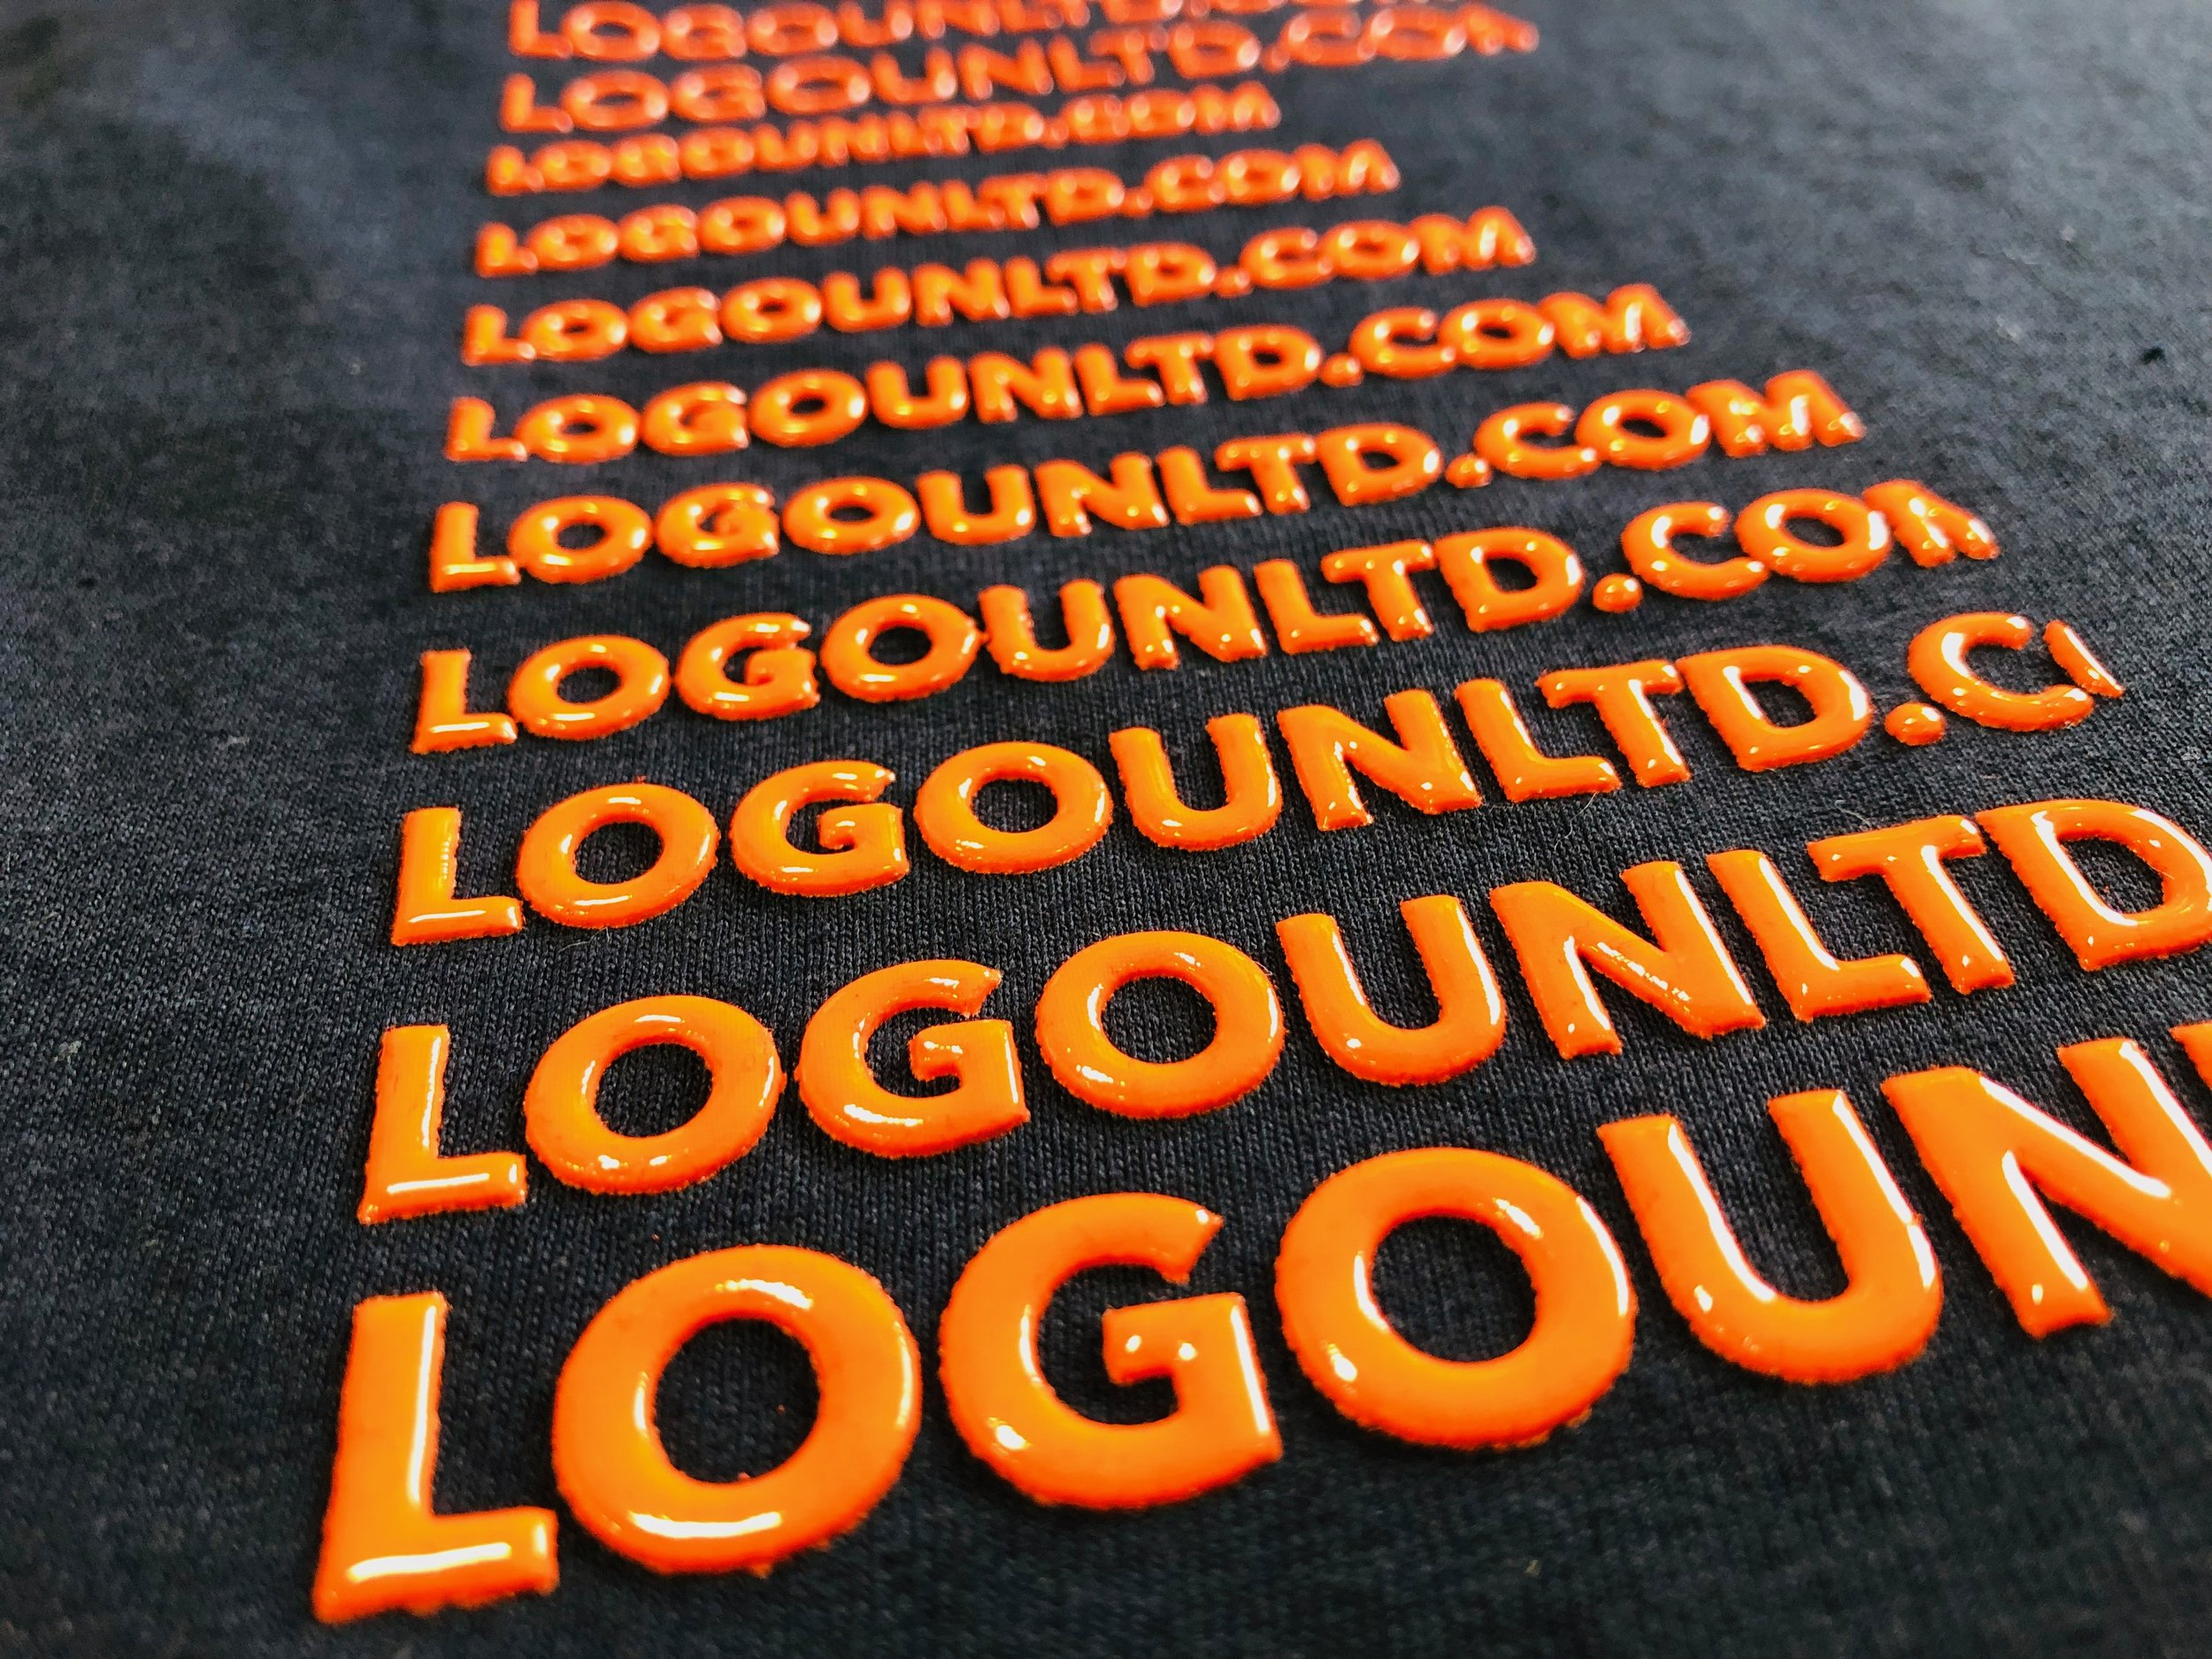 logounltd_laser_etching_embroidery_screen_printing_apparel_uniform_custom_tshirts_kirkland_bellevue_seattle_redmond_woodinville_branded_merchandise_promotional_products_logo_unltd_specialty_inks_HD_gel_raised (7).JPG